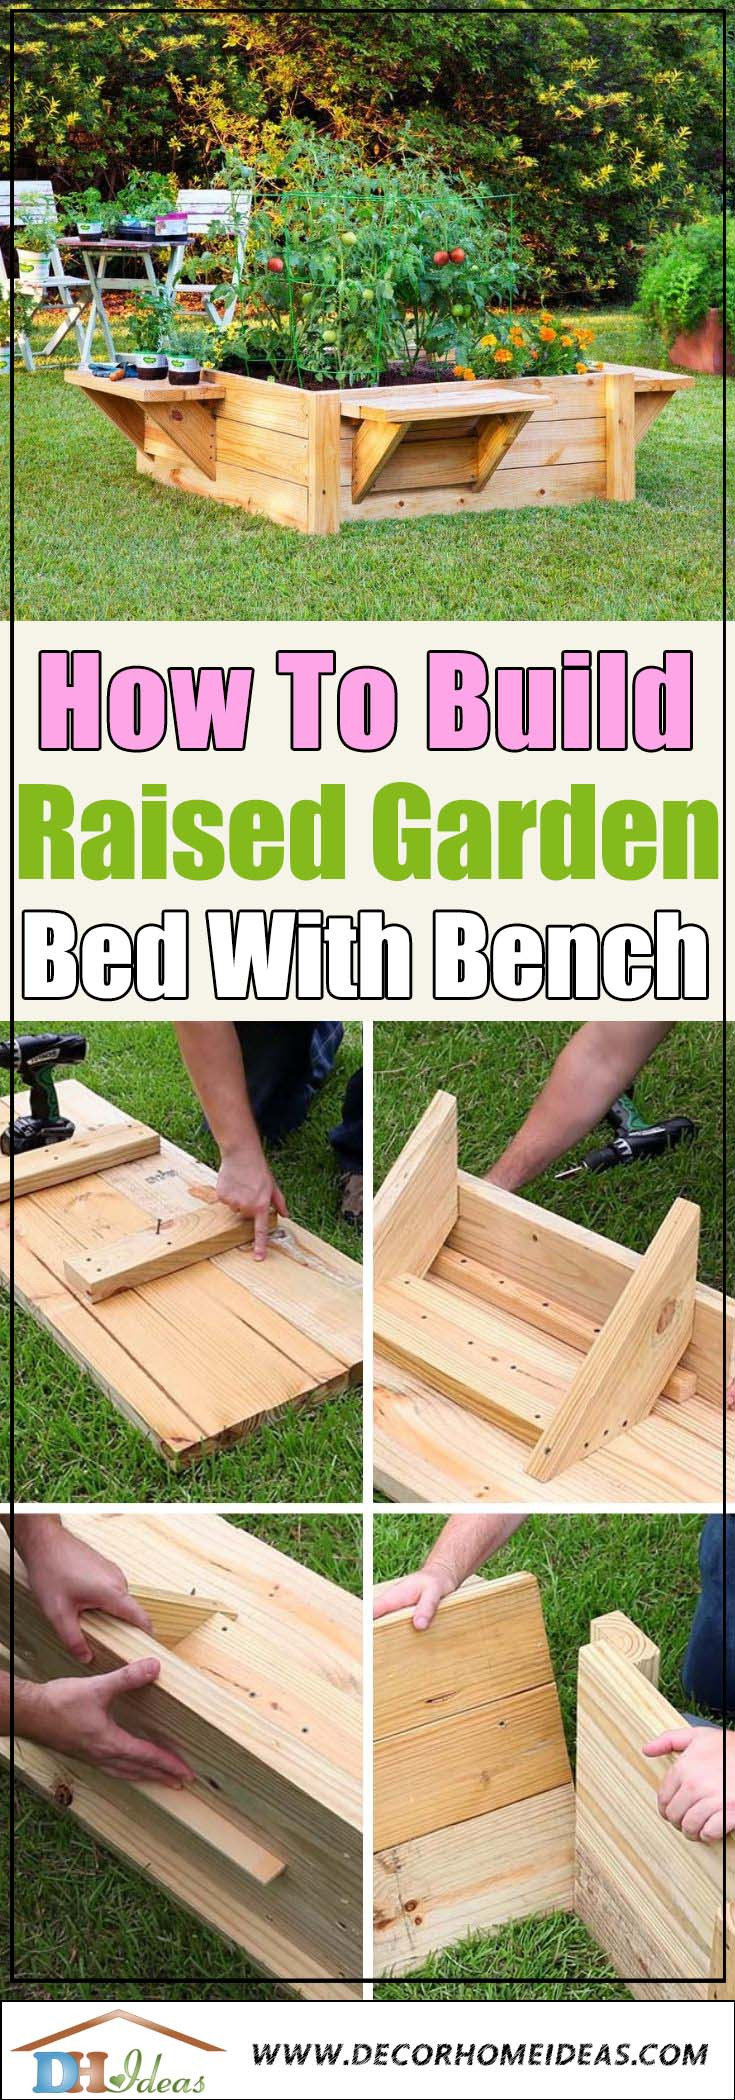 DIY Raised Garden Bed With Benches Tutorial